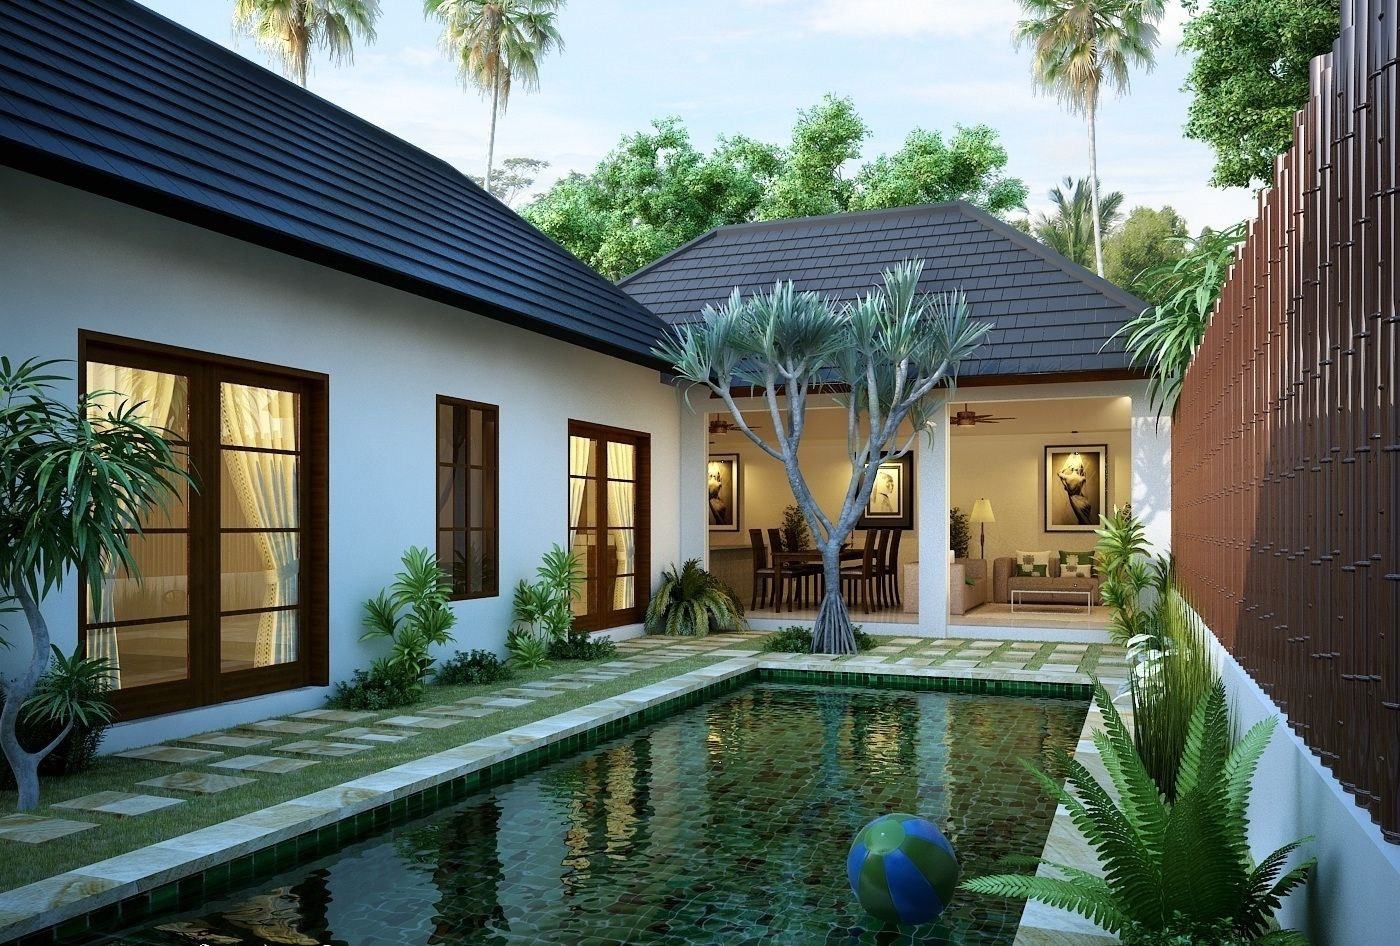 beautiful modern tropical exterior house design 2014 | house